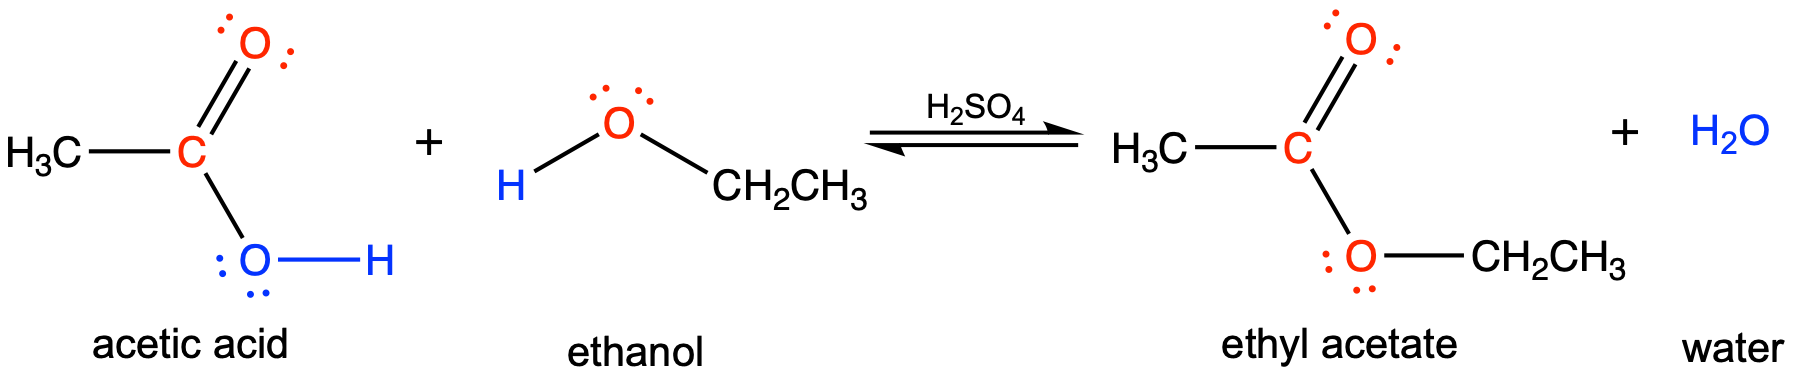 This figure has four structures, two reactants and two products. The first reactant has a central carbon attached to a C H 3 group to the left, a double bonded oxygen (with two lone pairs) to the top, and a single bond to oxygen to the right, which has two lone pairs and is single bonded to a hydrogen. Underneath is written acetic acid. The second structure has a central oxygen has two lone pairs with a single bond to hydrogen to the left and a C H 2 C H 3 group to the right. Underneath is written ethanol. Then there are equilibrium arrows with H 2 S O 4 written above it. The first product has a central carbon with a single bond to a C H 3 group, a double bond to oxygen (which has two lone pairs) and a single bond to an oxygen, which has two lone pairs which is single bonded to a C H 2 C H 3 group. Underneath is written ethyl acetate. The second product is H 2 O, underneath is written water.